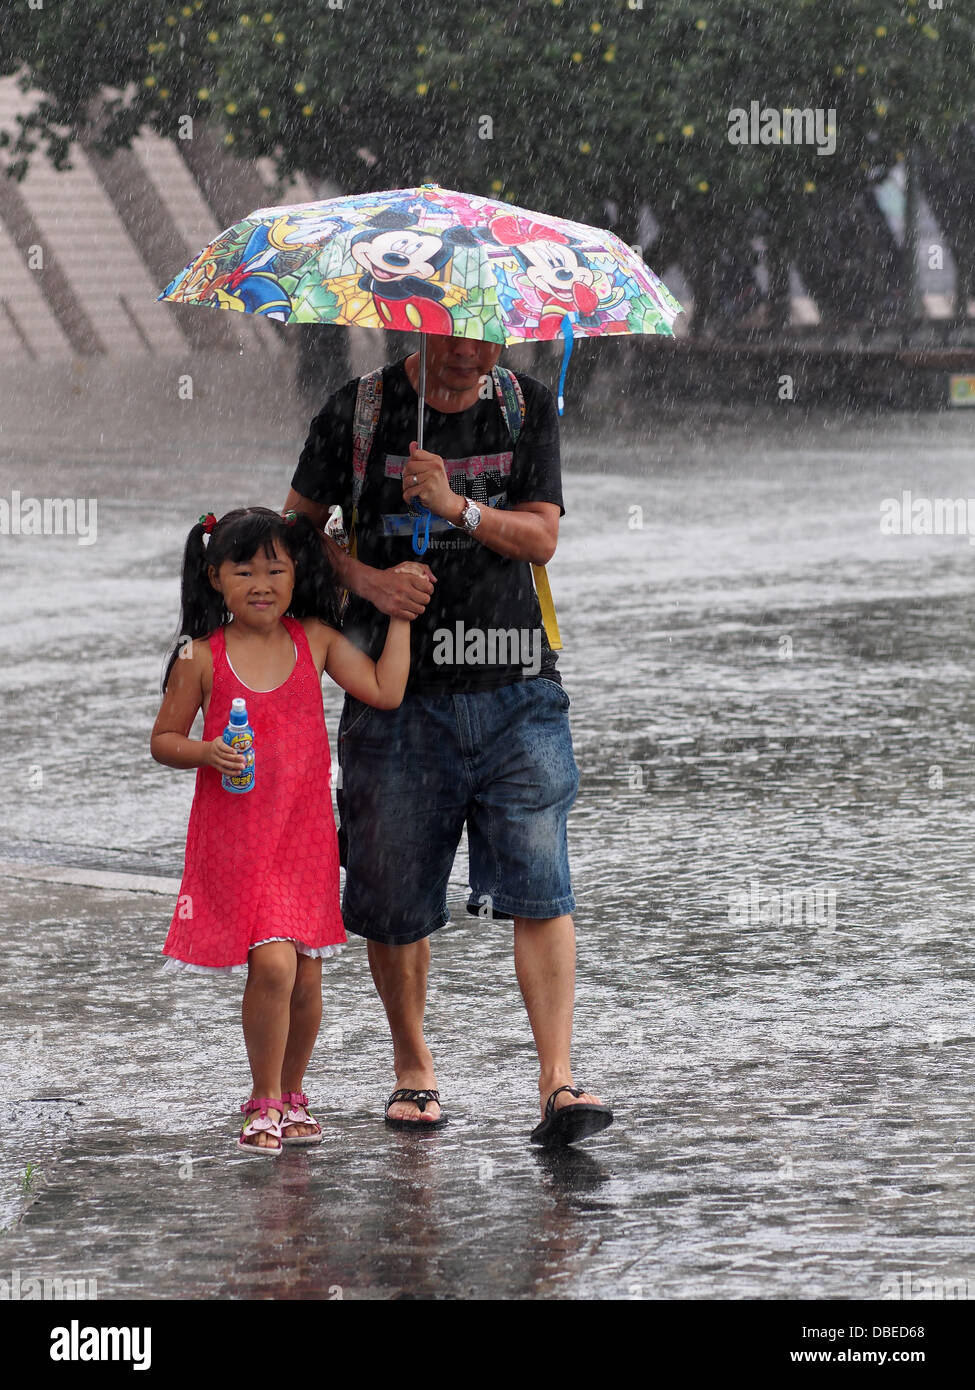 Father and daughter sheltering under their umbrella during a downpour of rain in Hong Kong - Stock Image